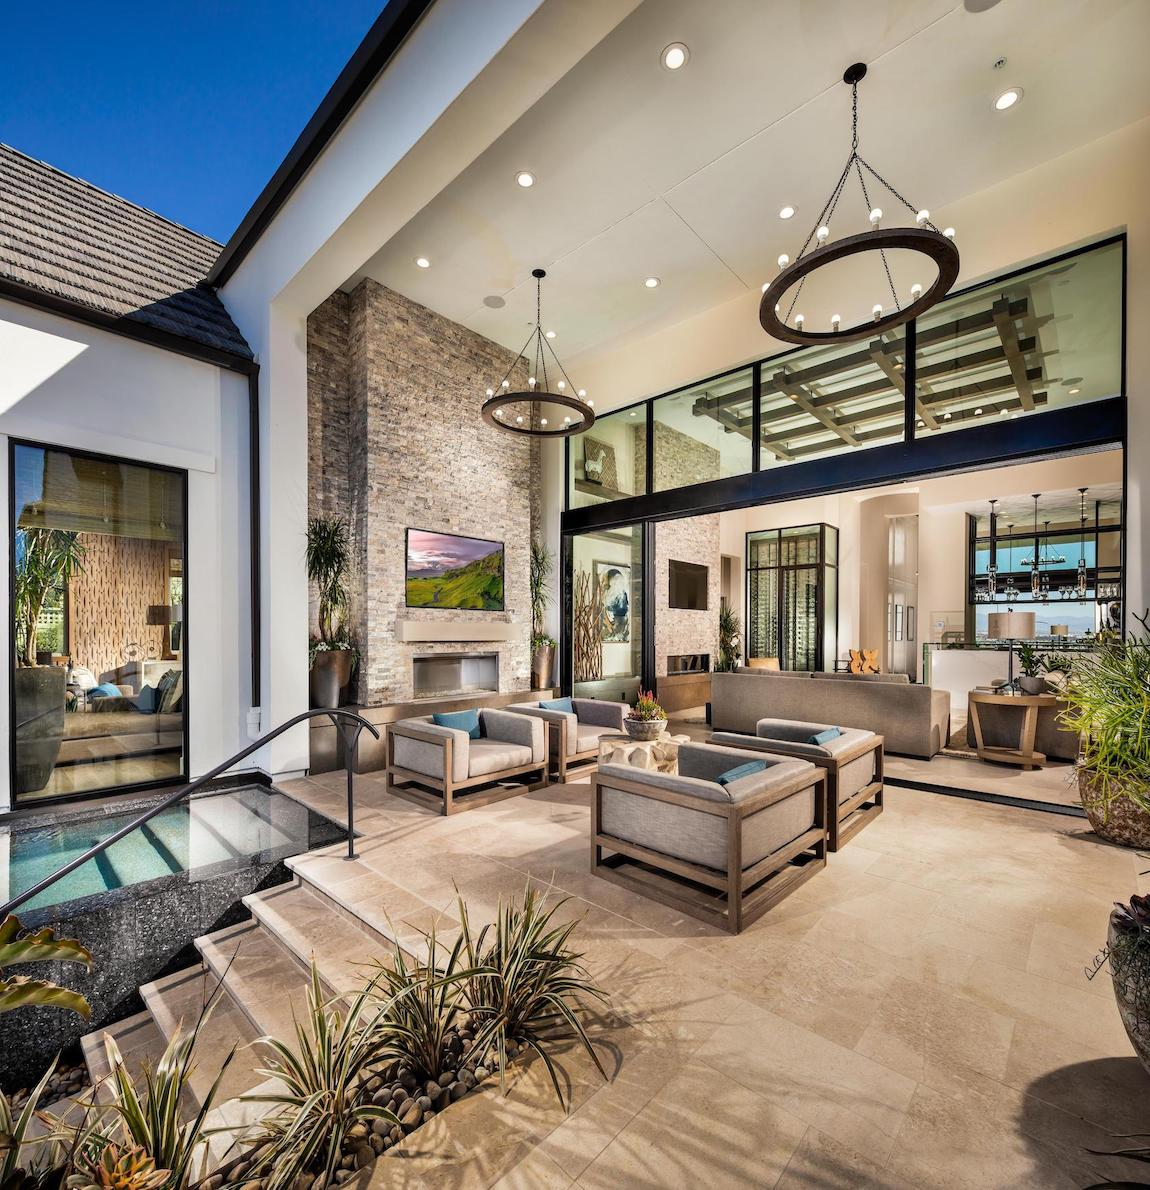 Stunning outdoor space highlighted by dual ring lighting fixtures